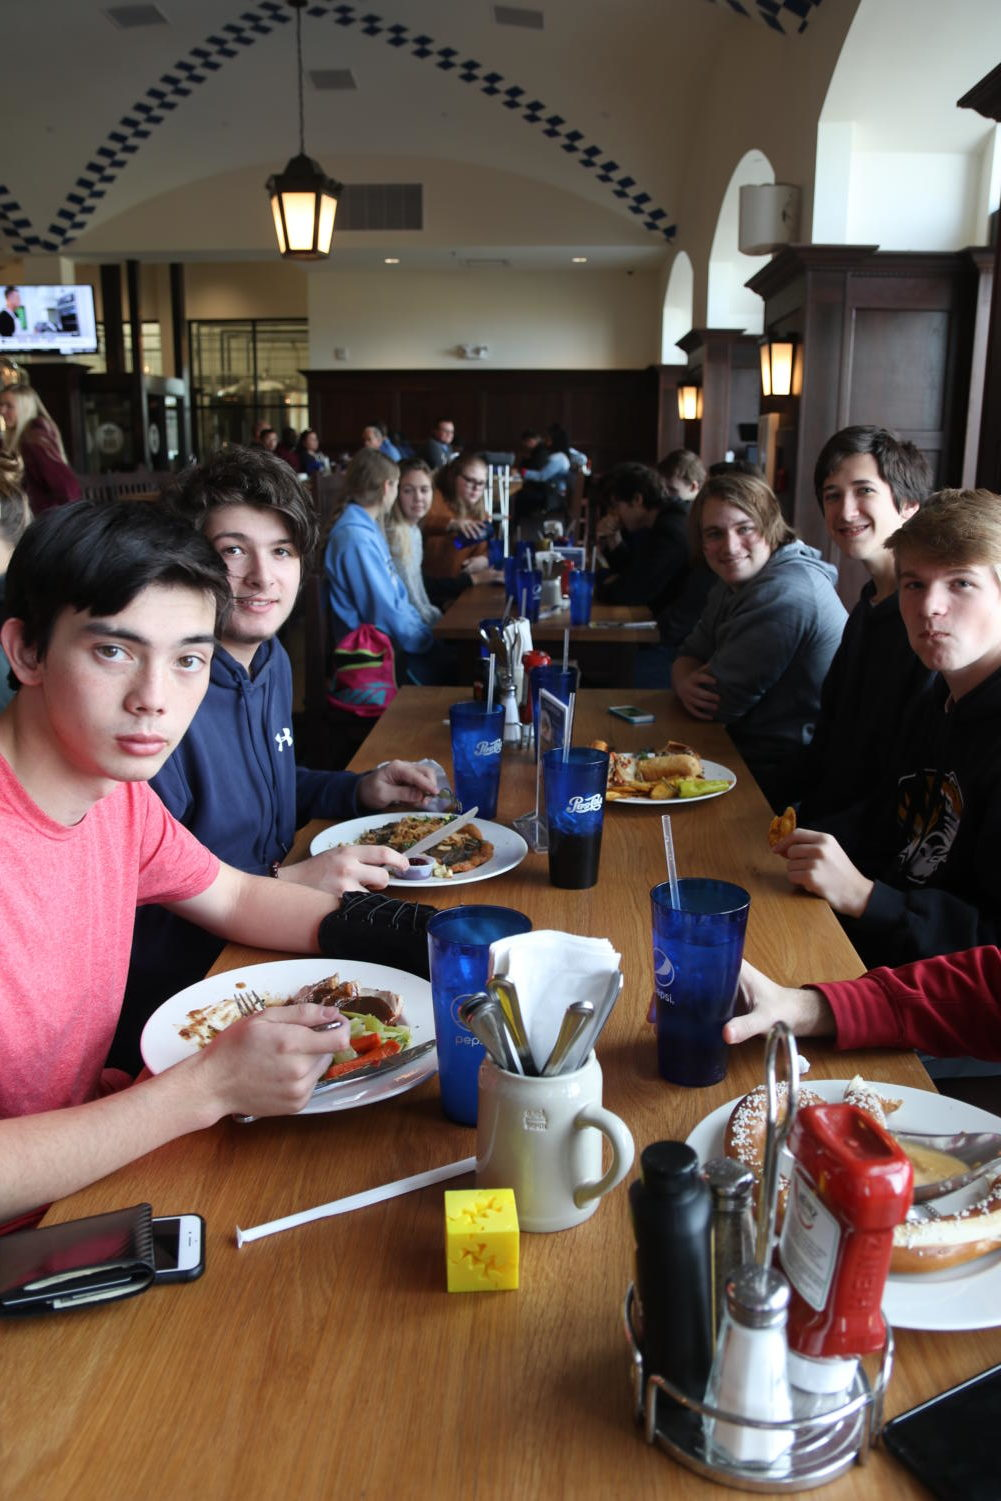 Junior+Tyler+Ray+and+sophomores+Kelton+Pumi%2C+Eric+Biever+and+Blake+Geisler+enjoy+their+German+lunches+at+the+Hofbrauhaus.+%E2%80%9CI+thought+the+food+was+really+good+because+of+its+authenticity%2C+and+we+don%E2%80%99t+taste+anything+else+like+it+in+St.+Louis%2C%E2%80%9D+Ray+said.+